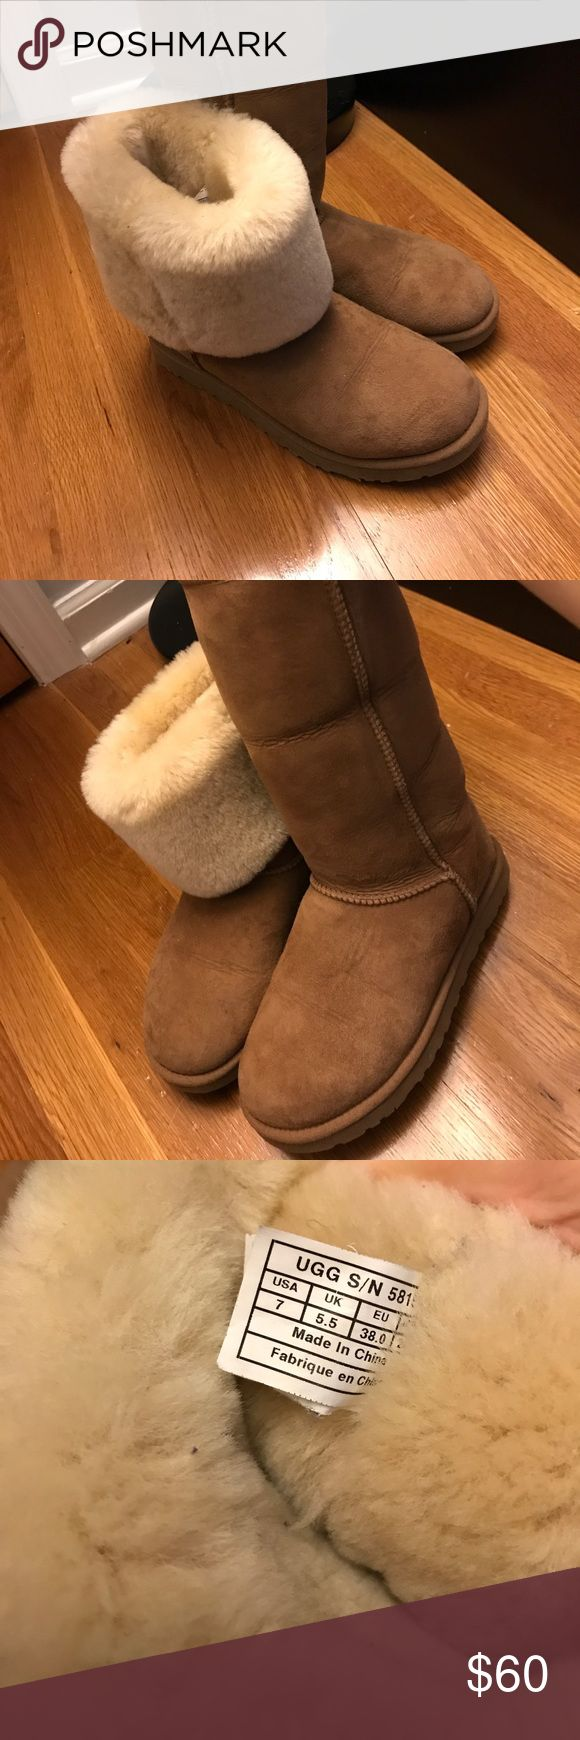 Tall classic chestnut uggs Tall chestnut uggs-woman's size 7 they can be Woden folded or unfolded as seen in the picture- just have a crease where they are usually folded UGG Shoes